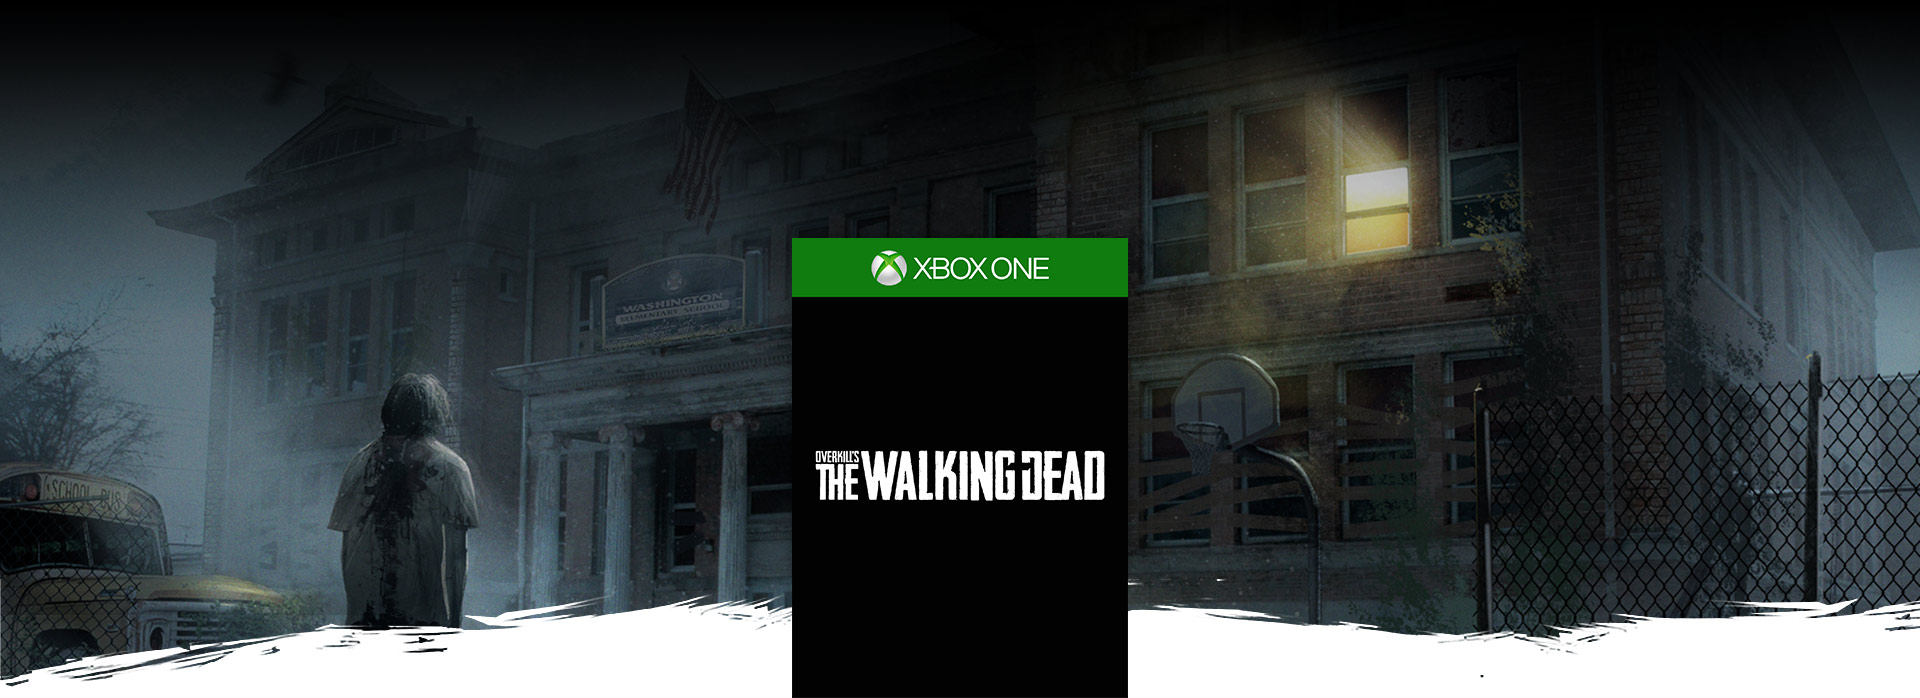 Overkill's the walking dead boxshot, Front view of an elementary school with a walker standing in front